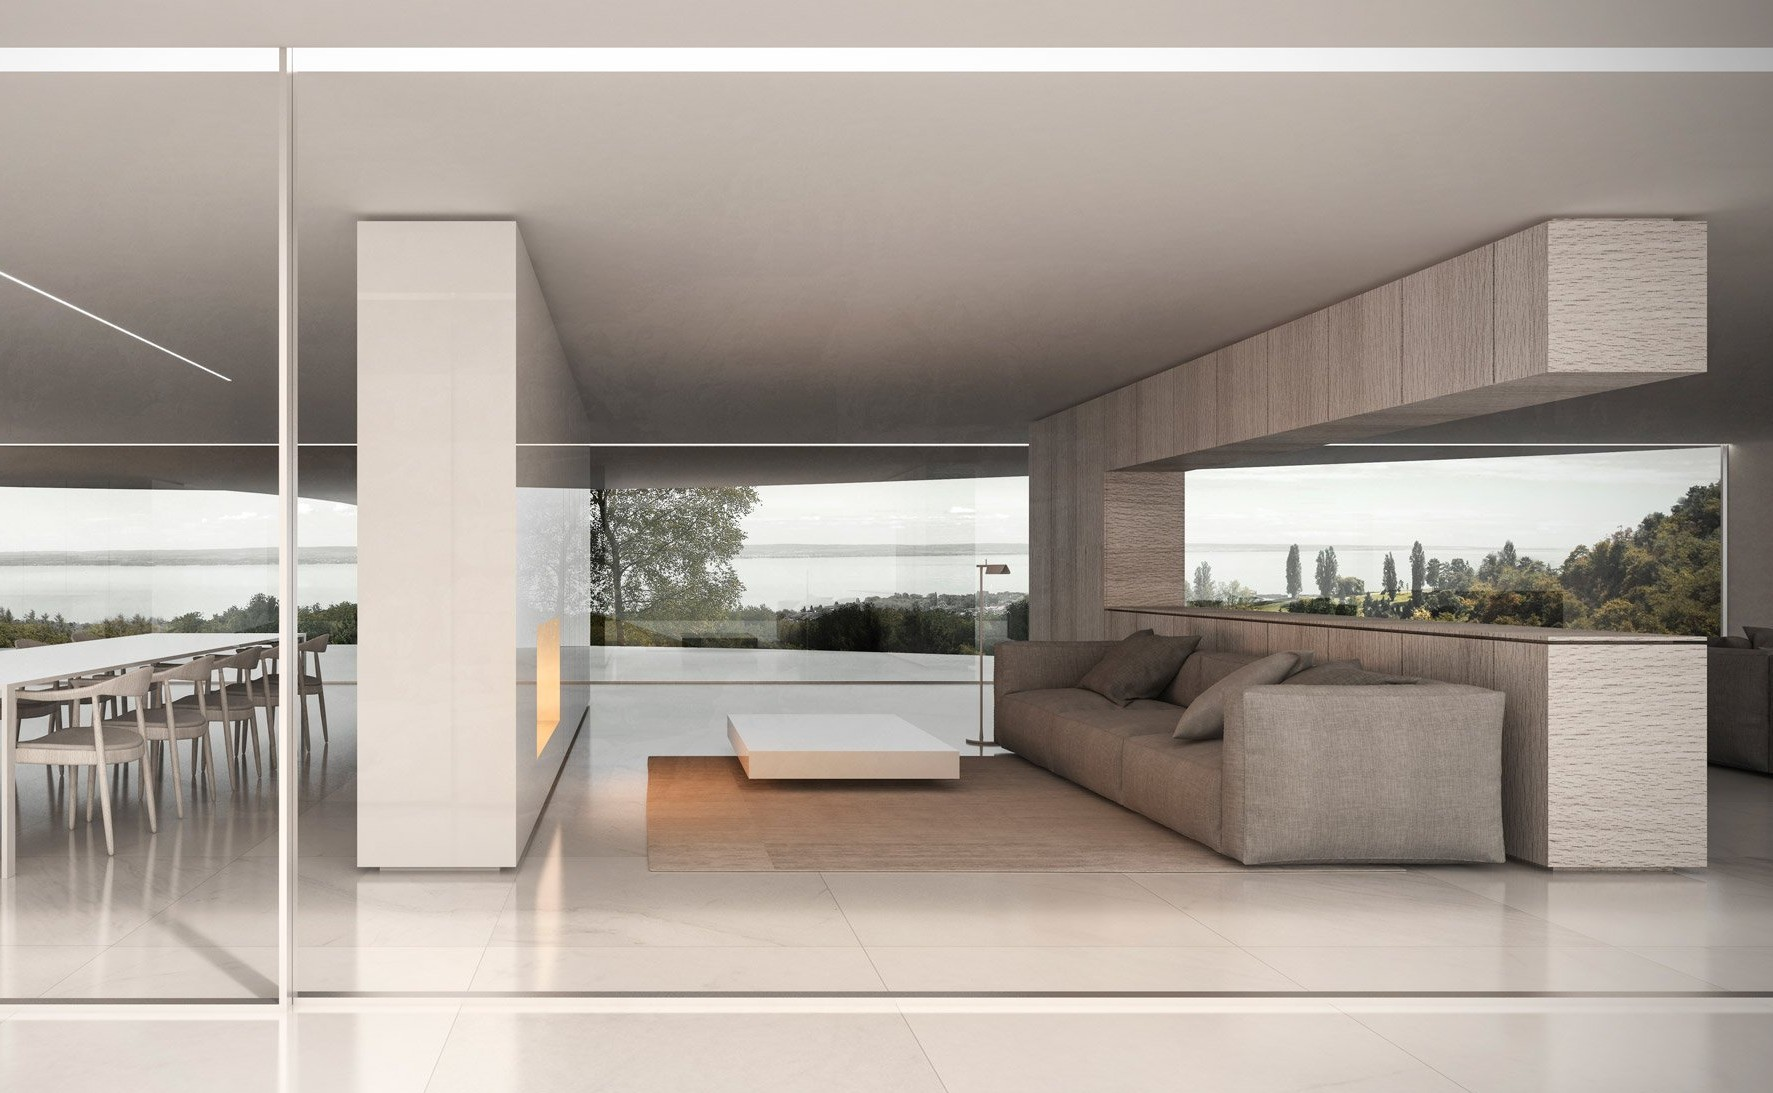 house-of-seven-gardens-fran-silvestre-arquitectos-architecture-residential-houses-spain_dezeen_2364_col_7